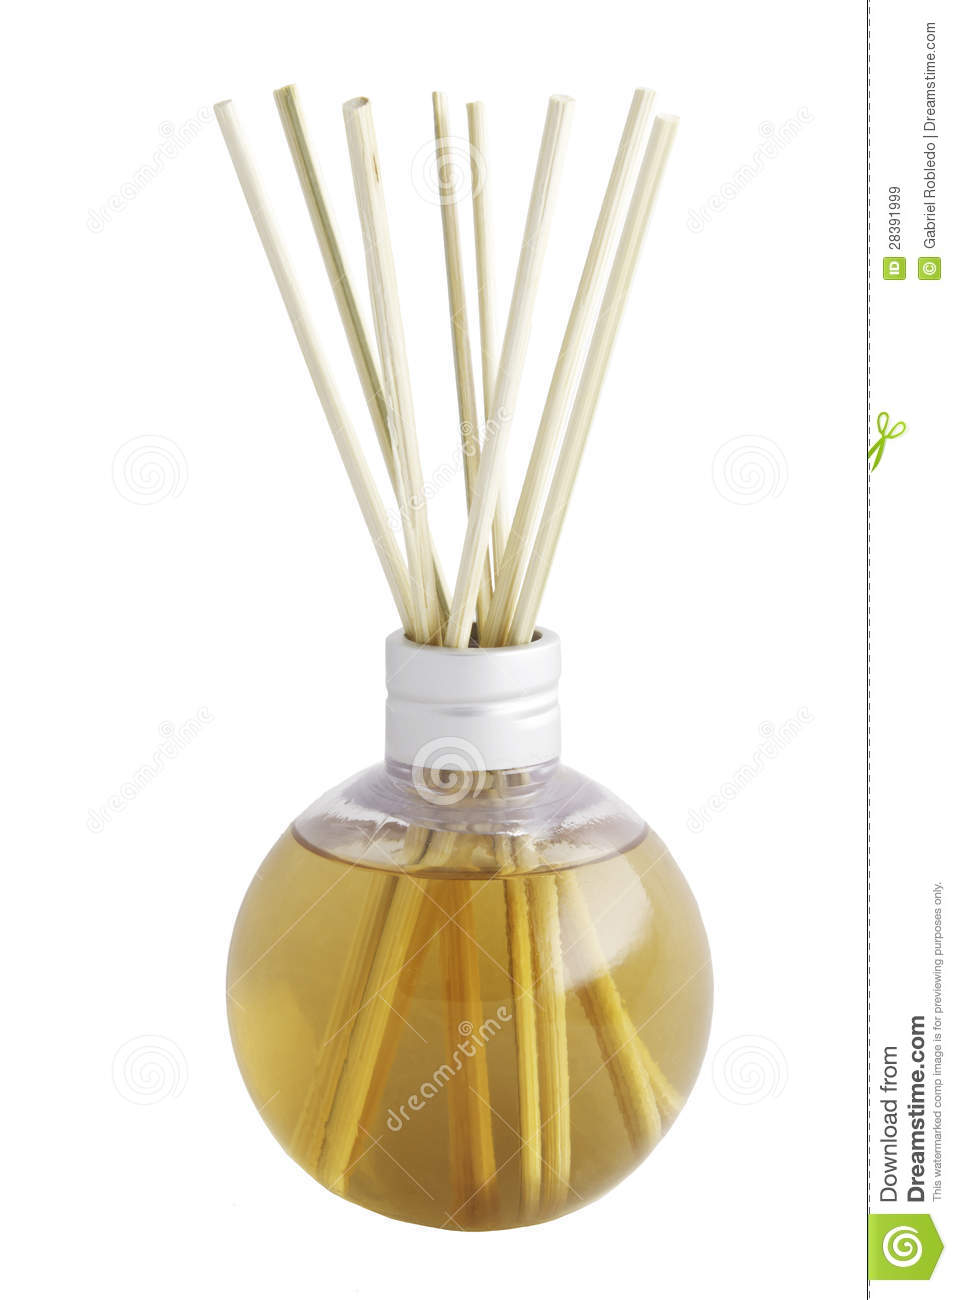 Scent Dispenser Royalty Free Stock Images Image 28391999